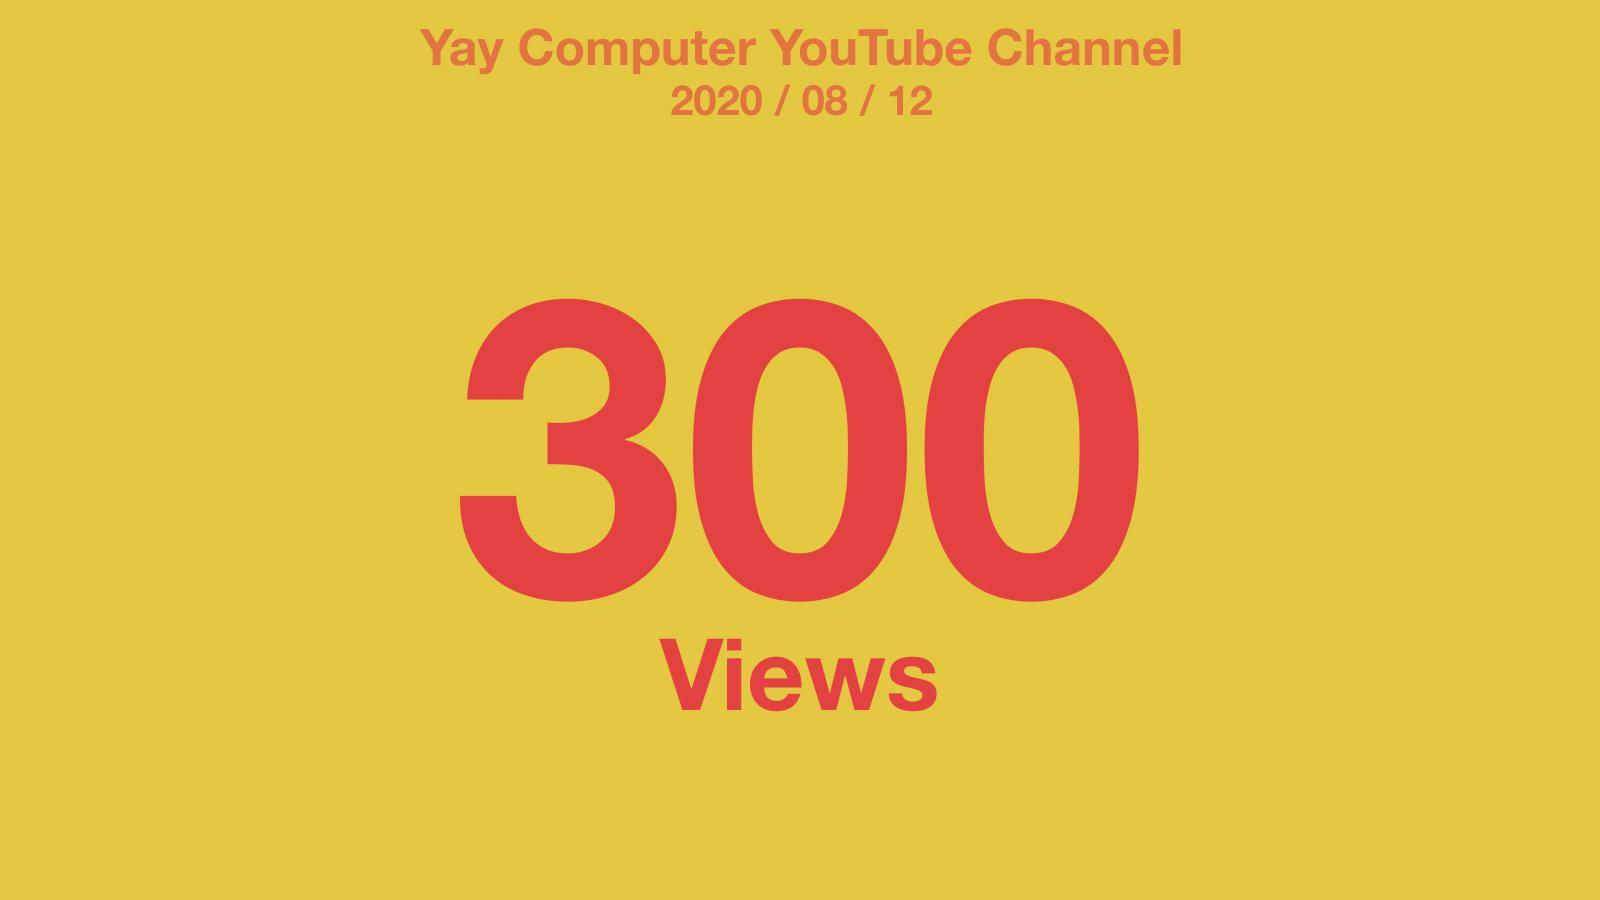 Yellow background with red text: Yay Computer YouTube Channel 2020/08/12 300 Views